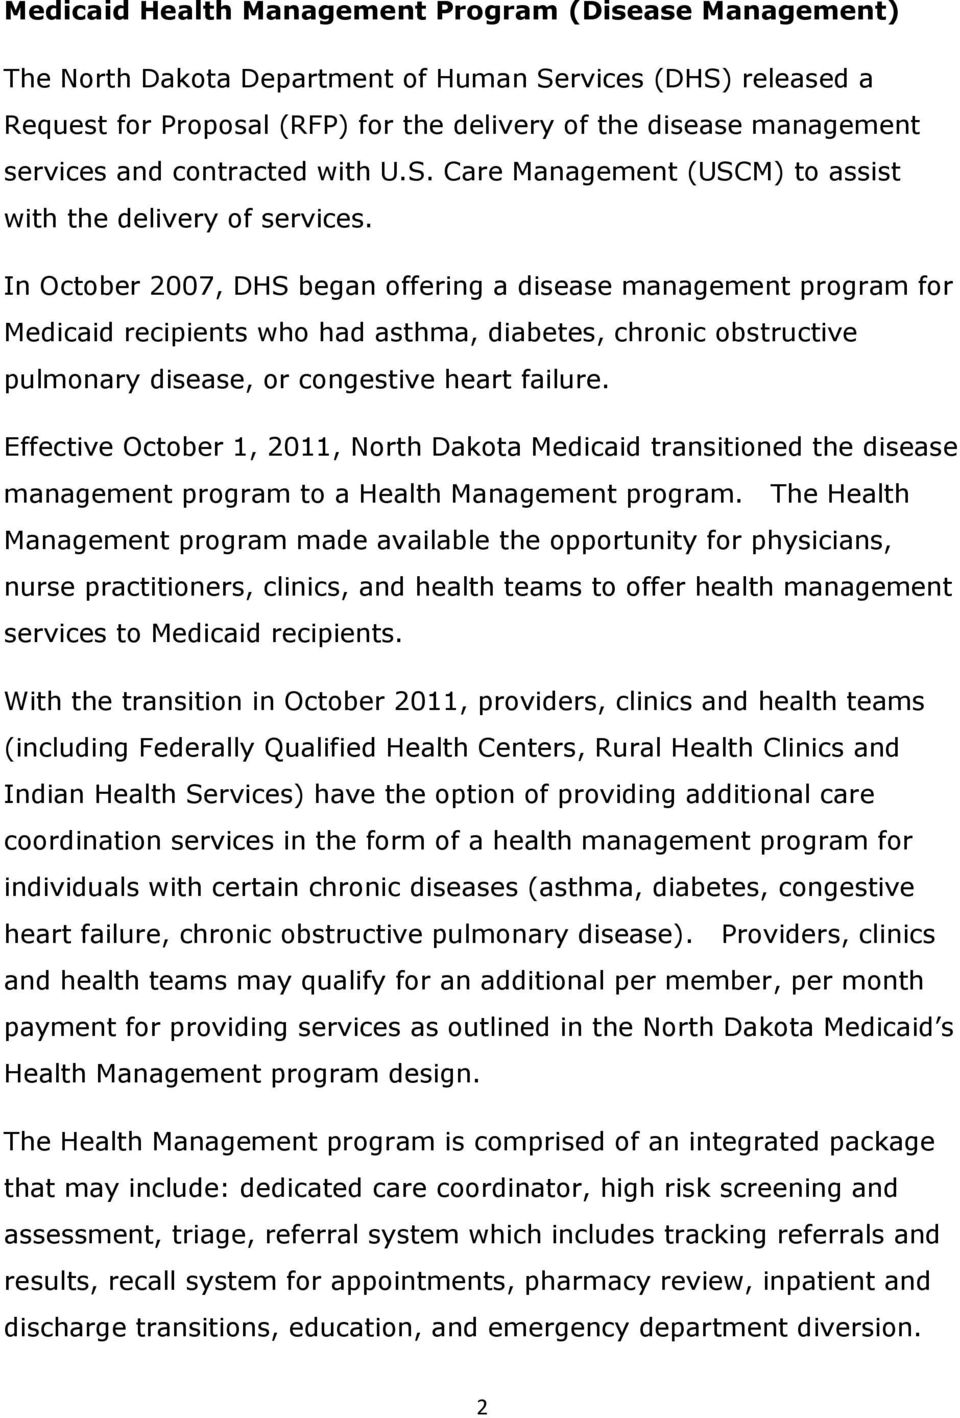 In October 2007, DHS began offering a disease management program for Medicaid recipients who had asthma, diabetes, chronic obstructive pulmonary disease, or congestive heart failure.